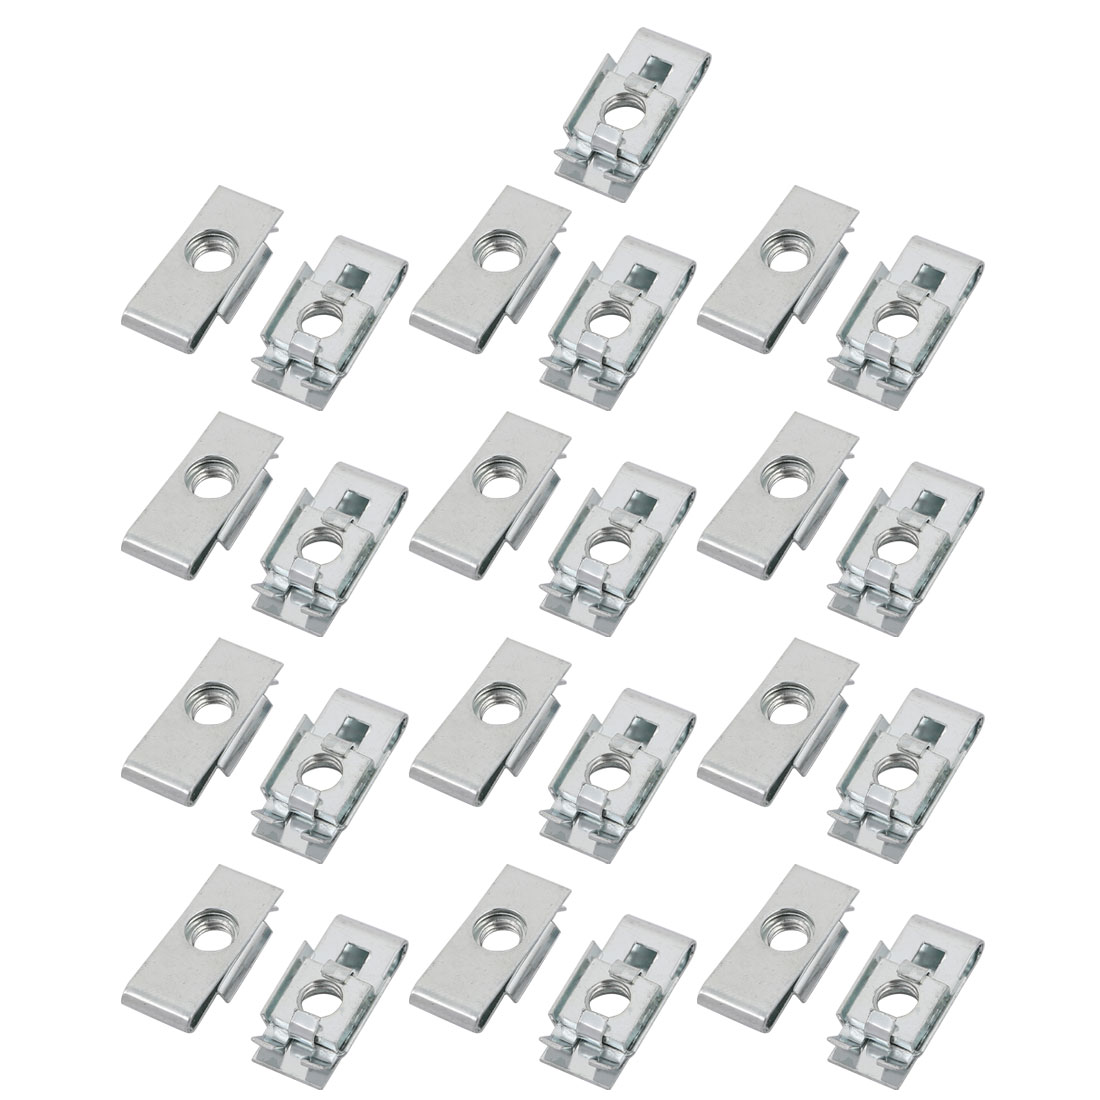 M6 24mmx10mm Iron White Zinc Plated Extruded U Nut Clip 25pcs